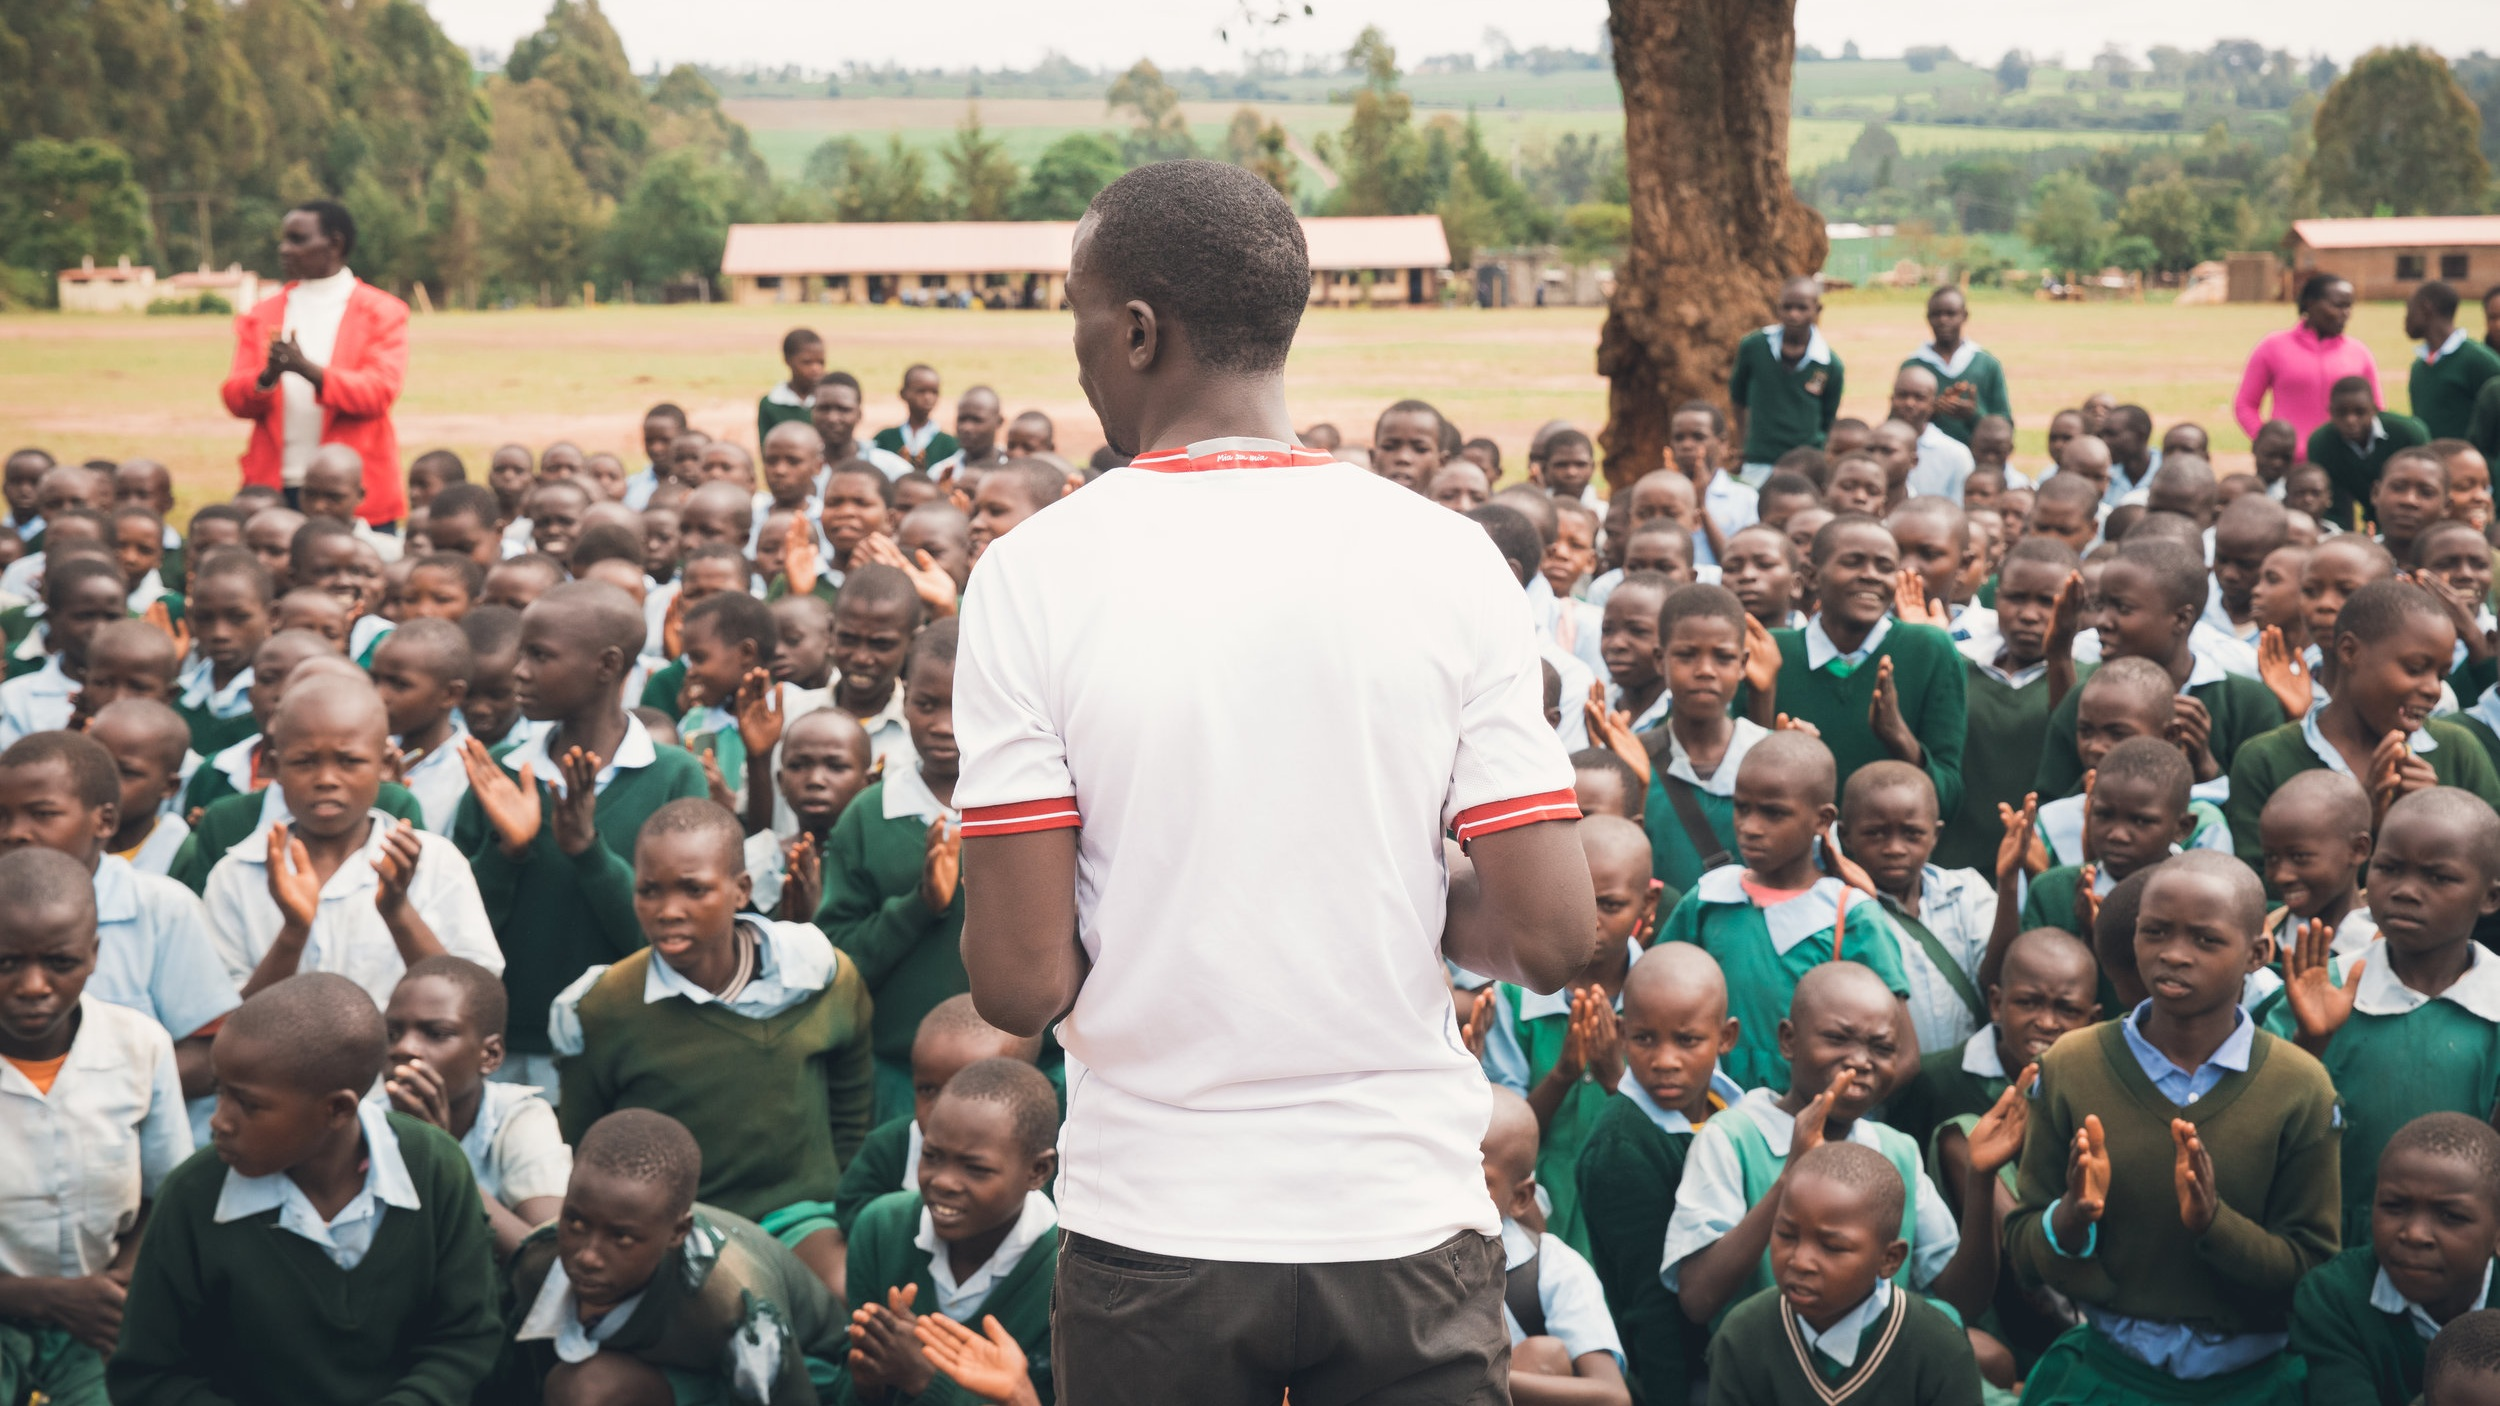 Did You Know? - There are nearly 3 million orphaned and vulnerable children in Kenya under the age of 18.